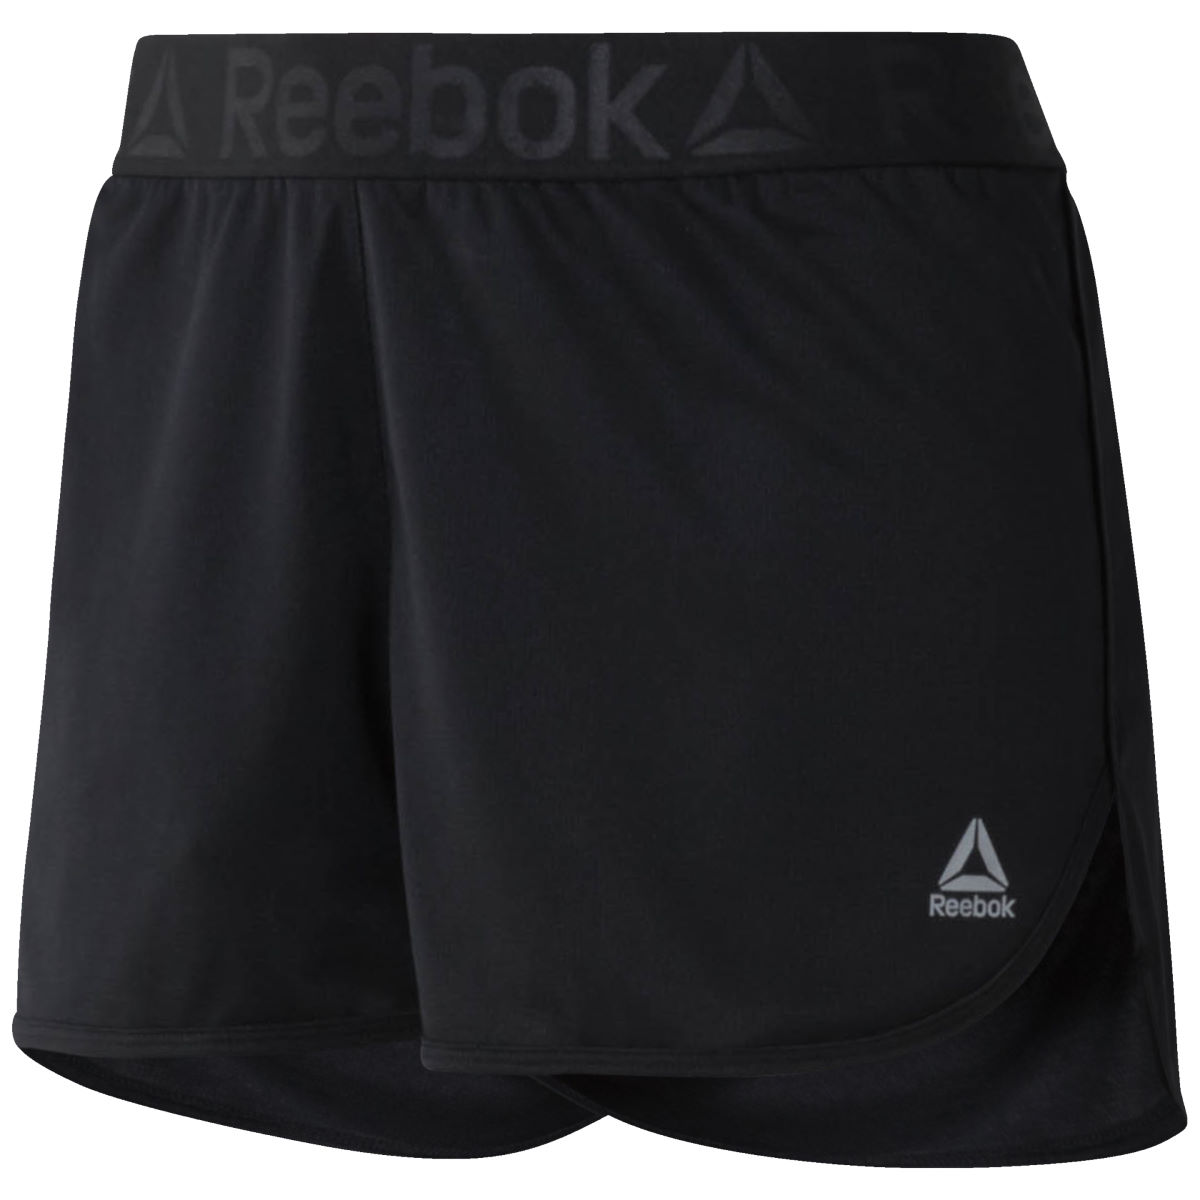 Short Femme Reebok Workout Ready - XS Noir Shorts de running